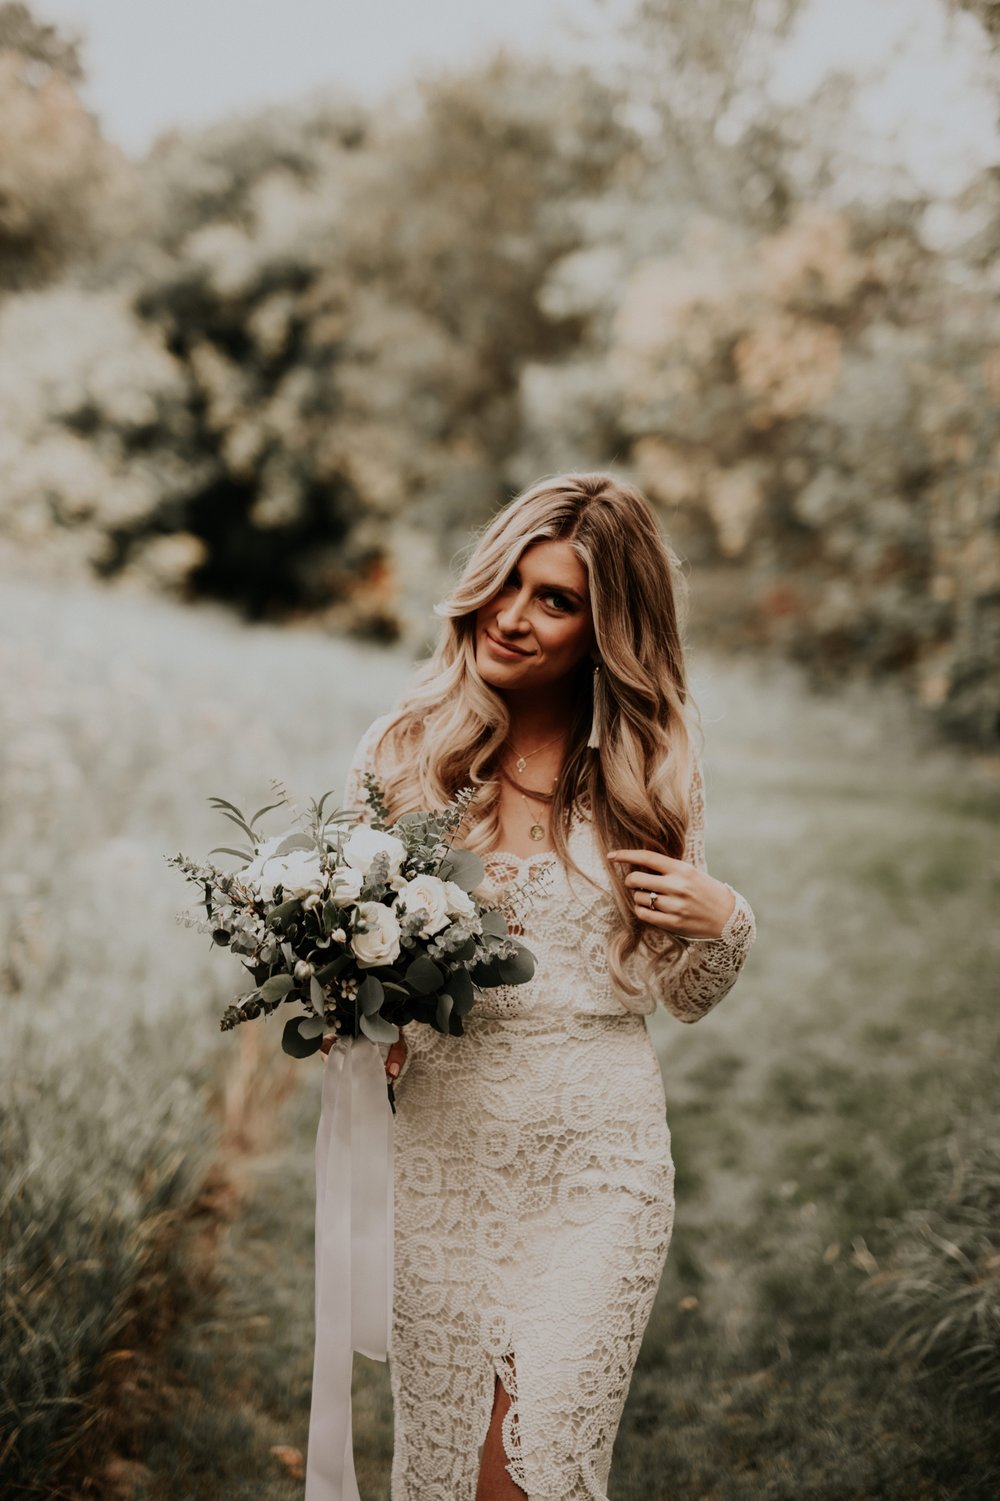 Wedding and Elopement Photography_Karly Ford Photo 19.jpg